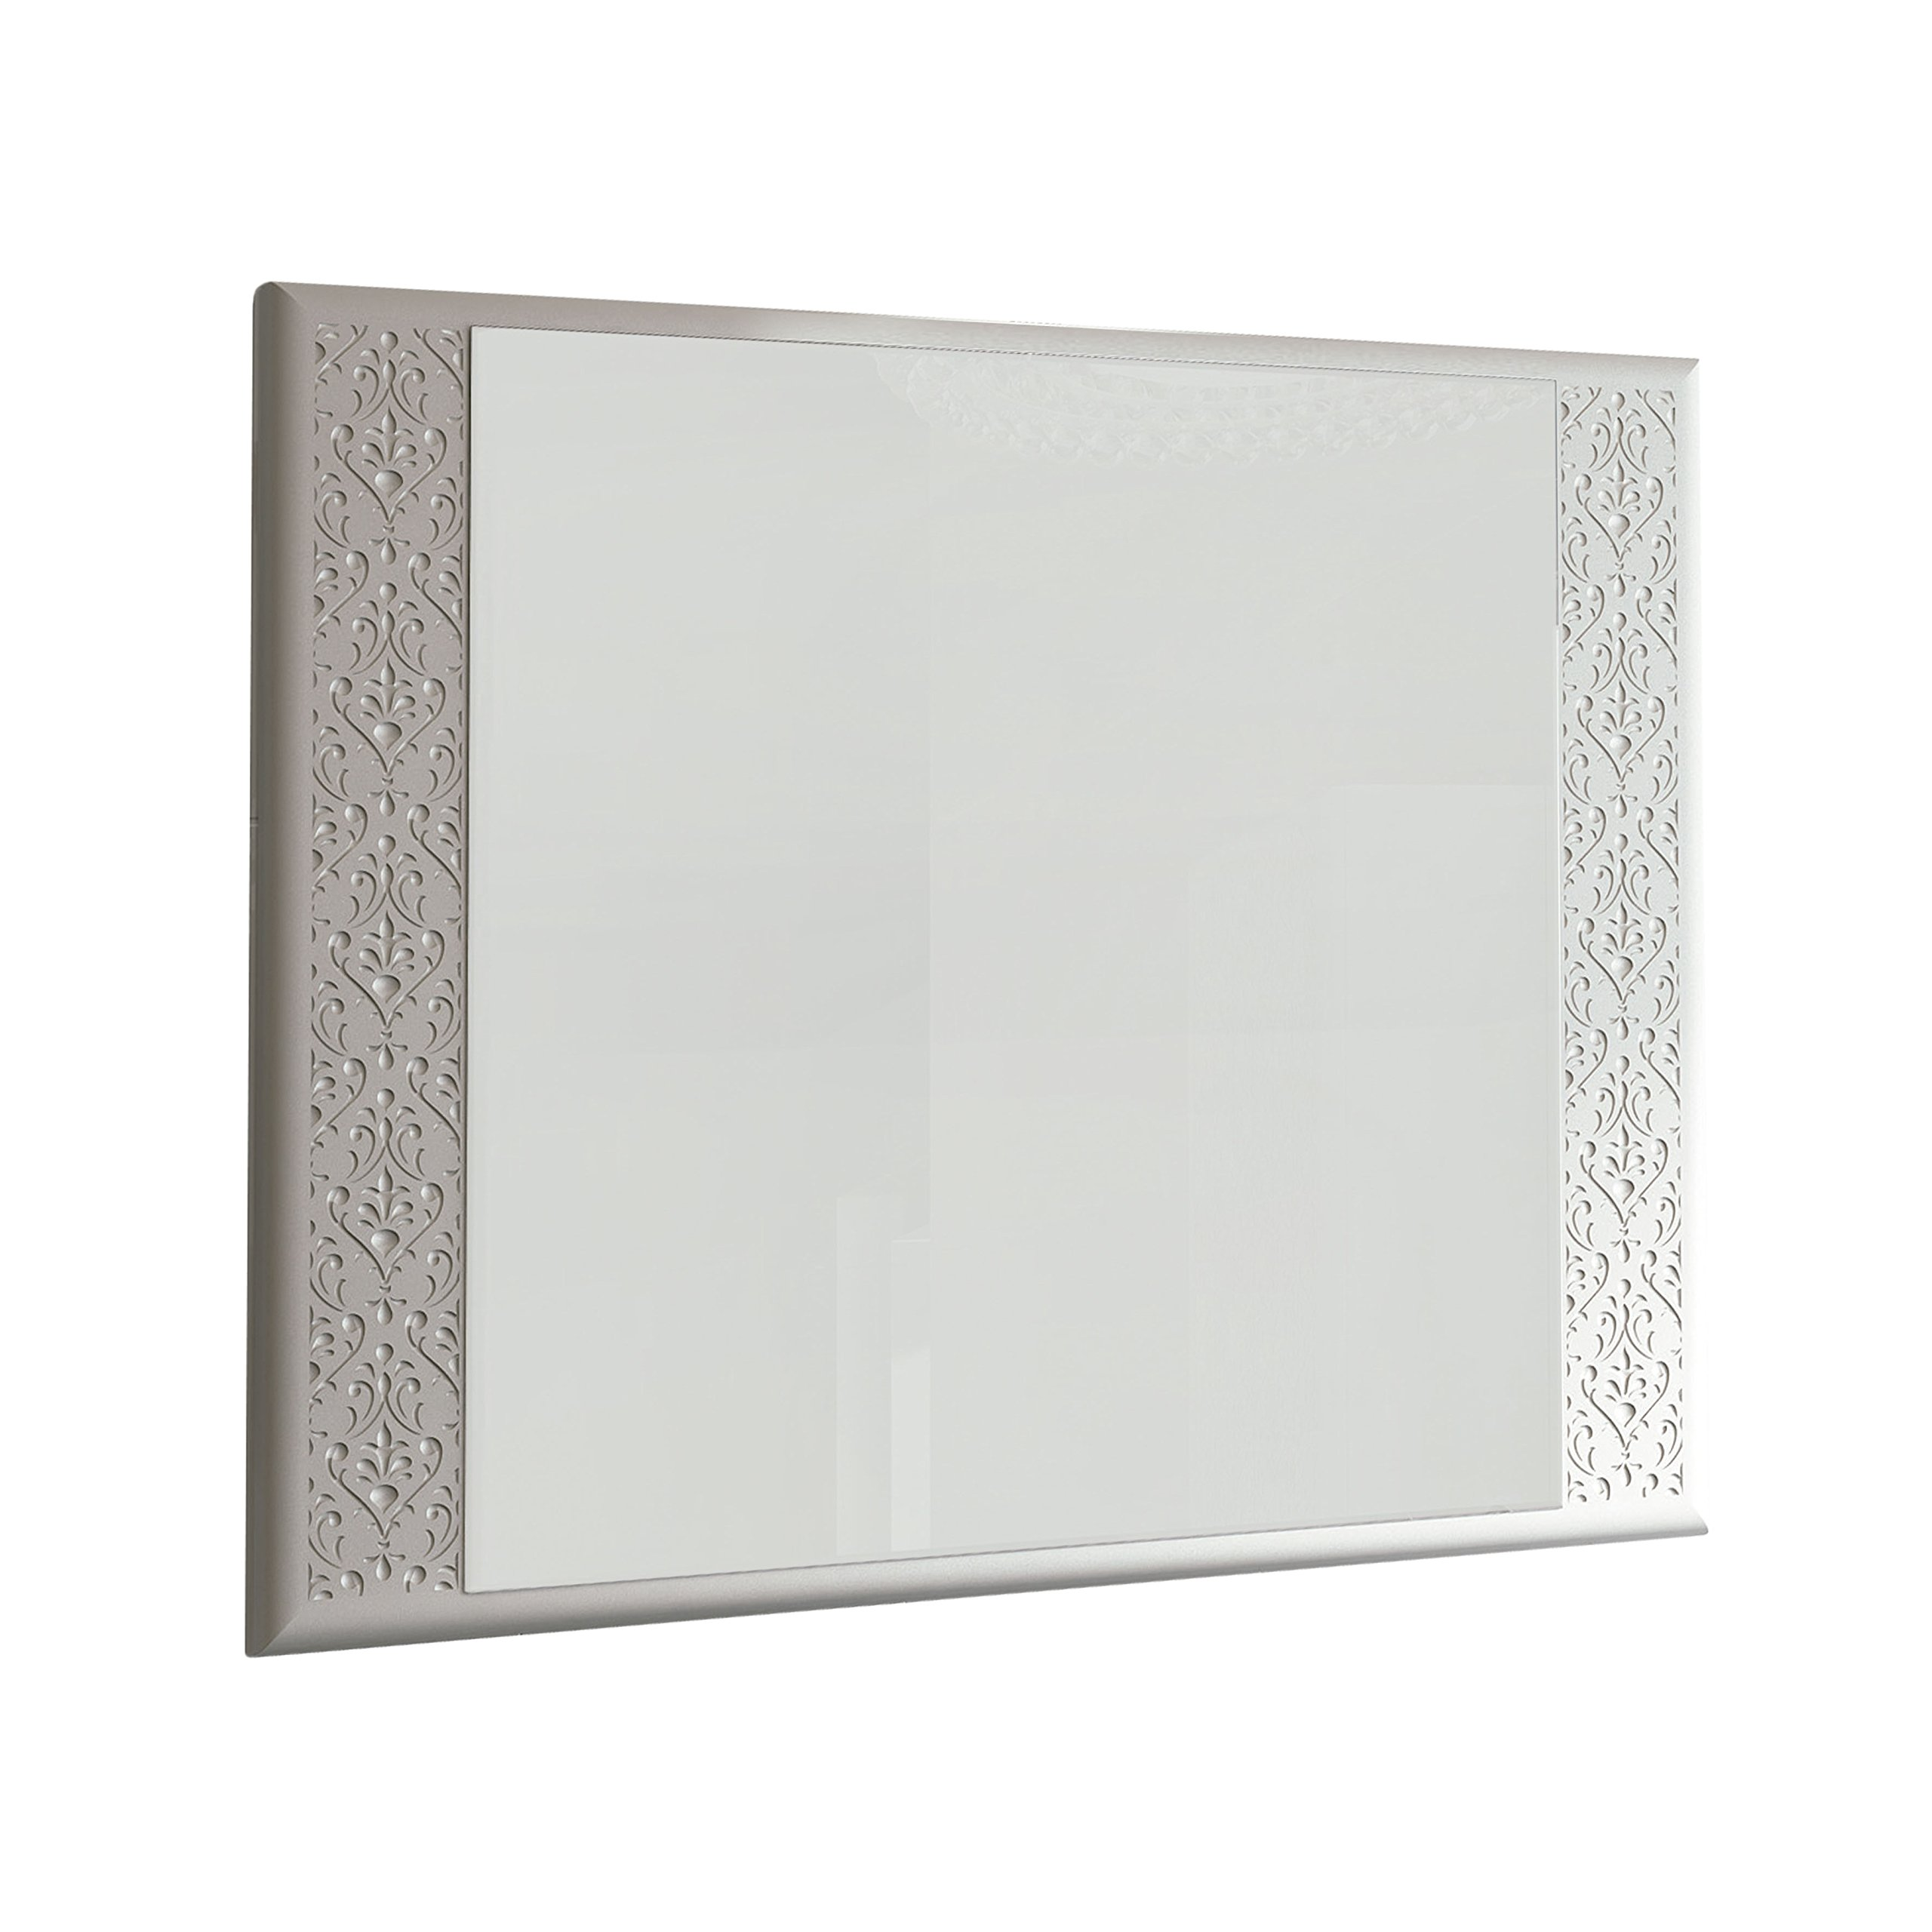 Eviva EVMR908-32WH-Venice Rome 32'' Modern Luxury Bathroom Mirror Combination, White